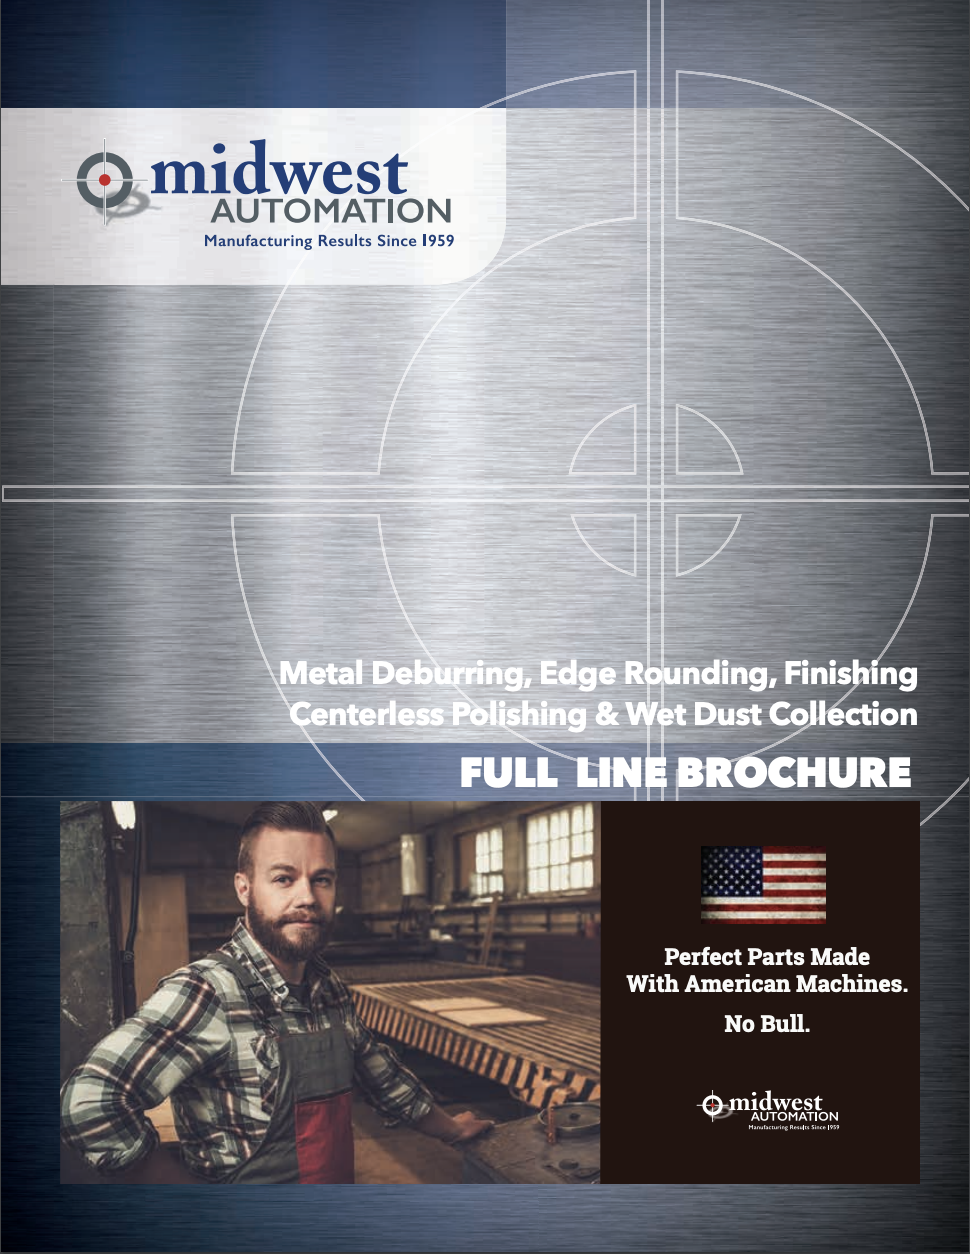 MidwestAutomationMetal2019